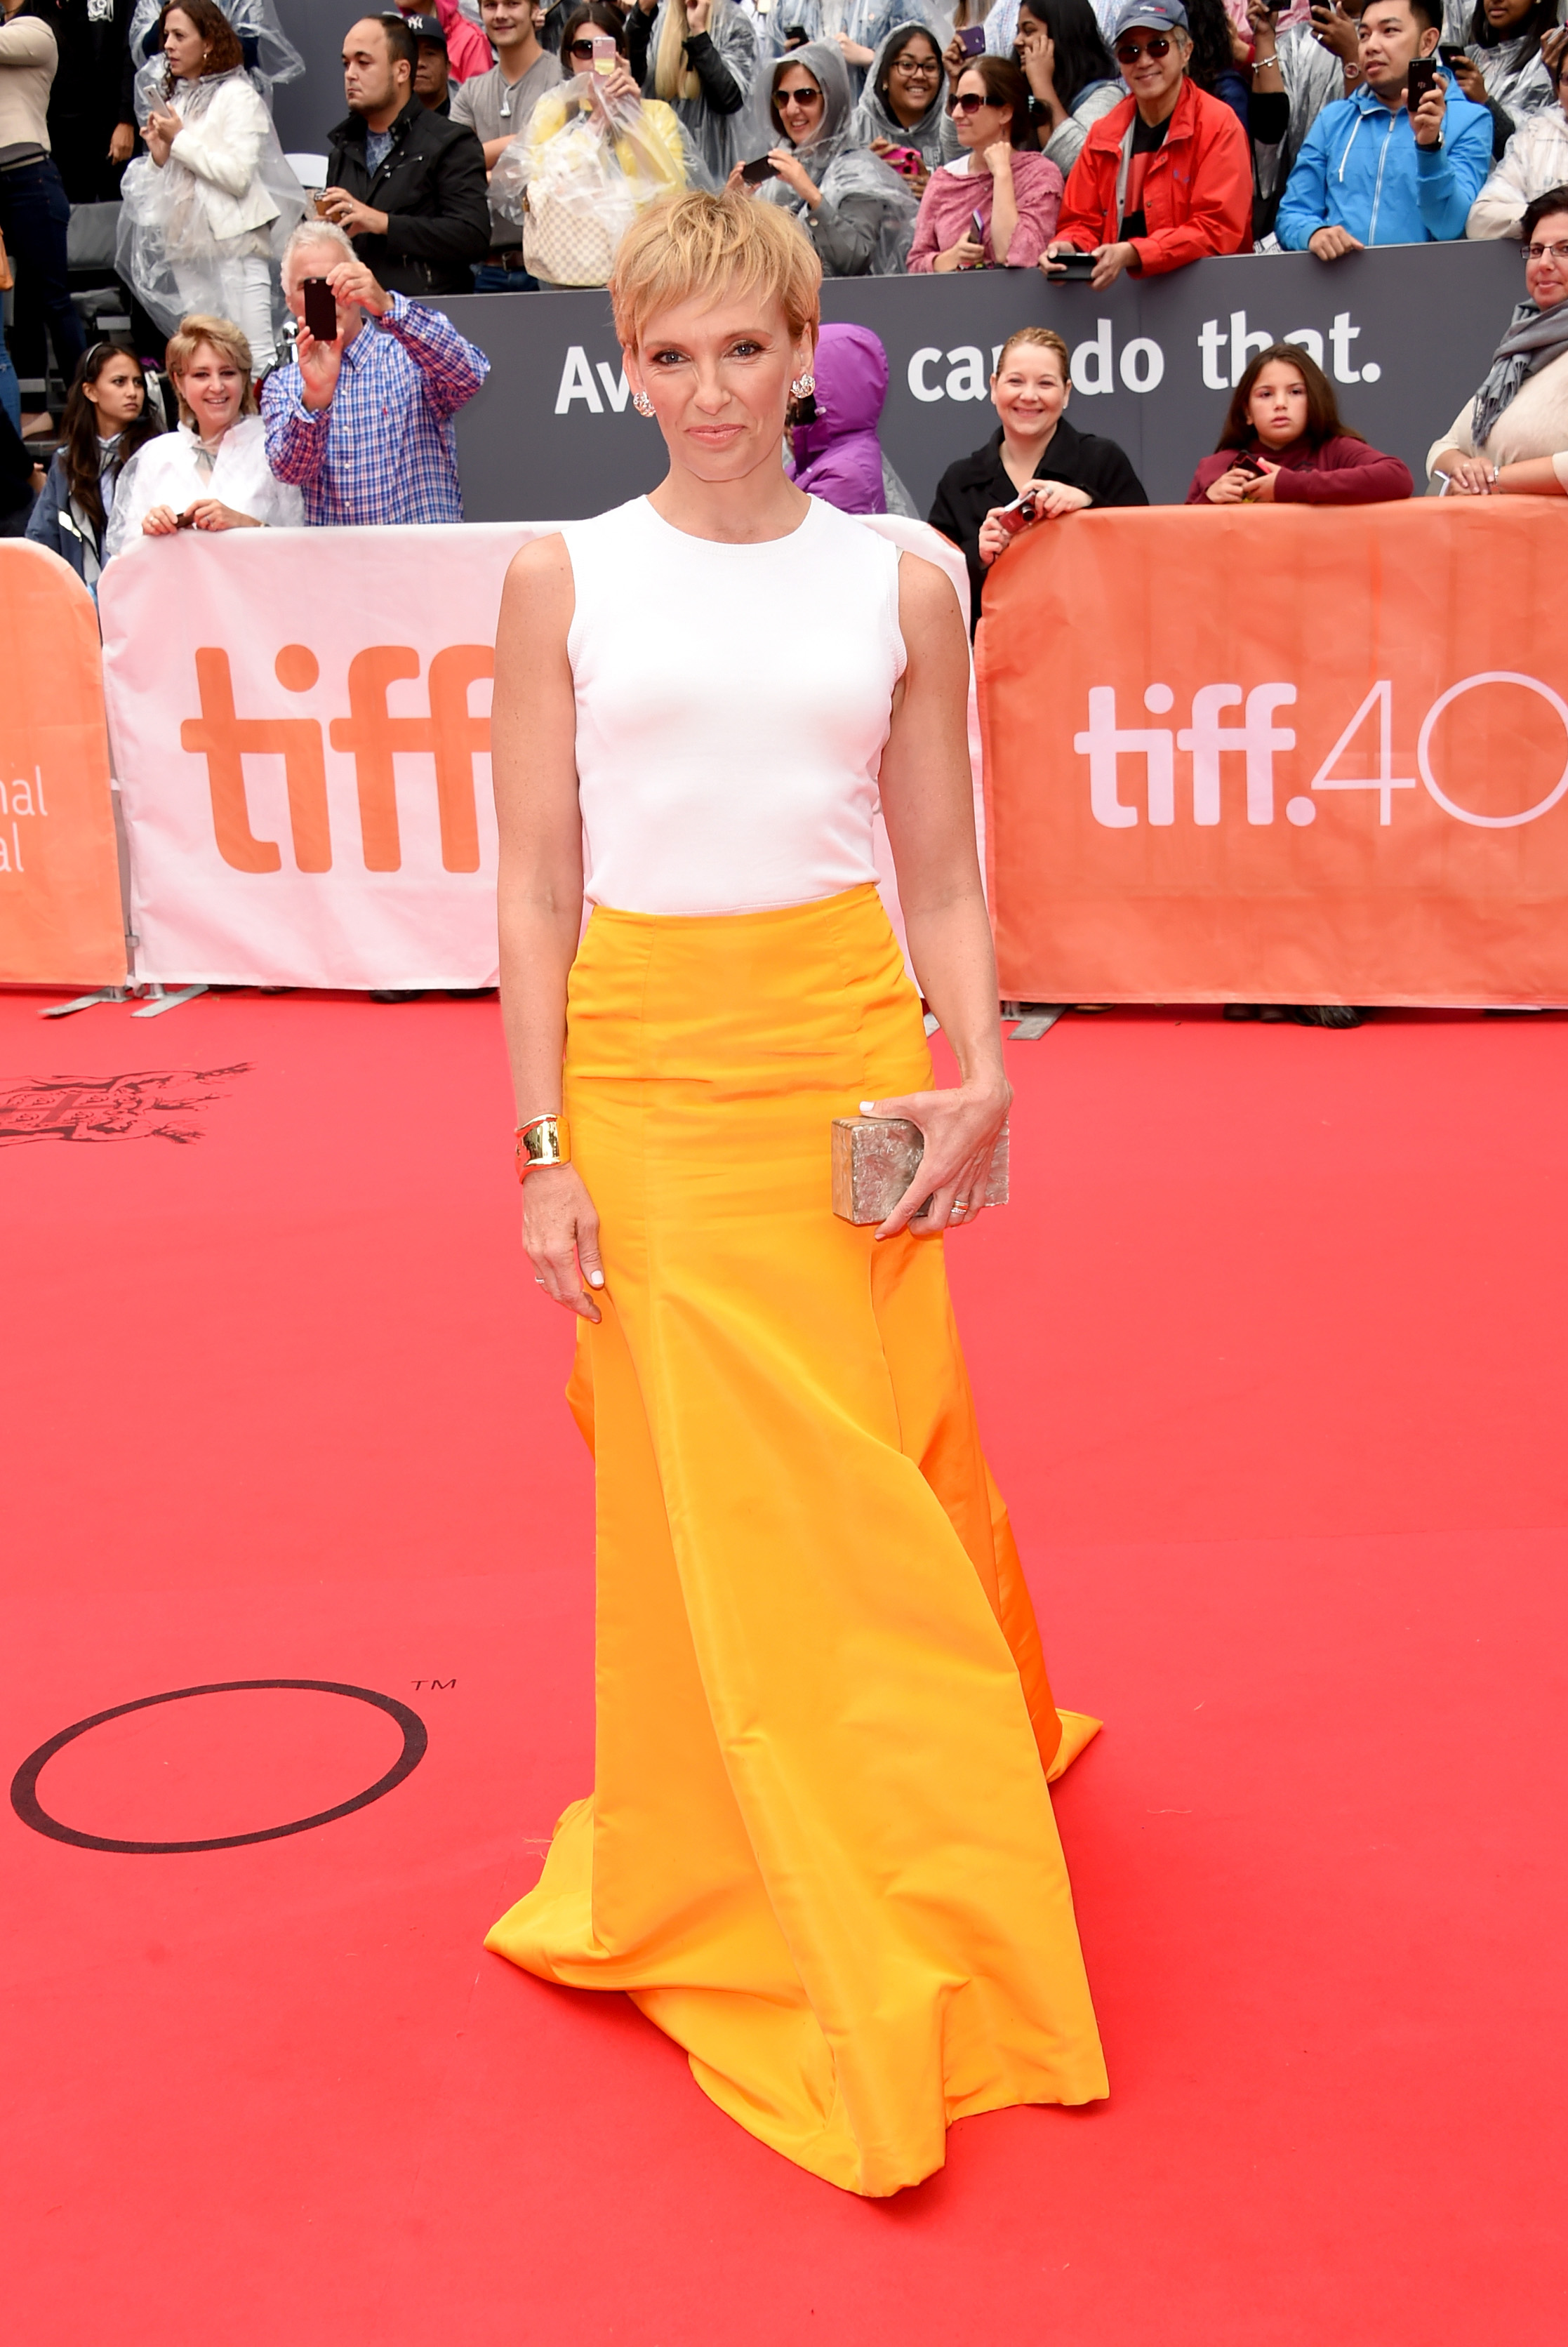 Toronto International Film Festival's 15 best and worst fashion moments [GALLERY]